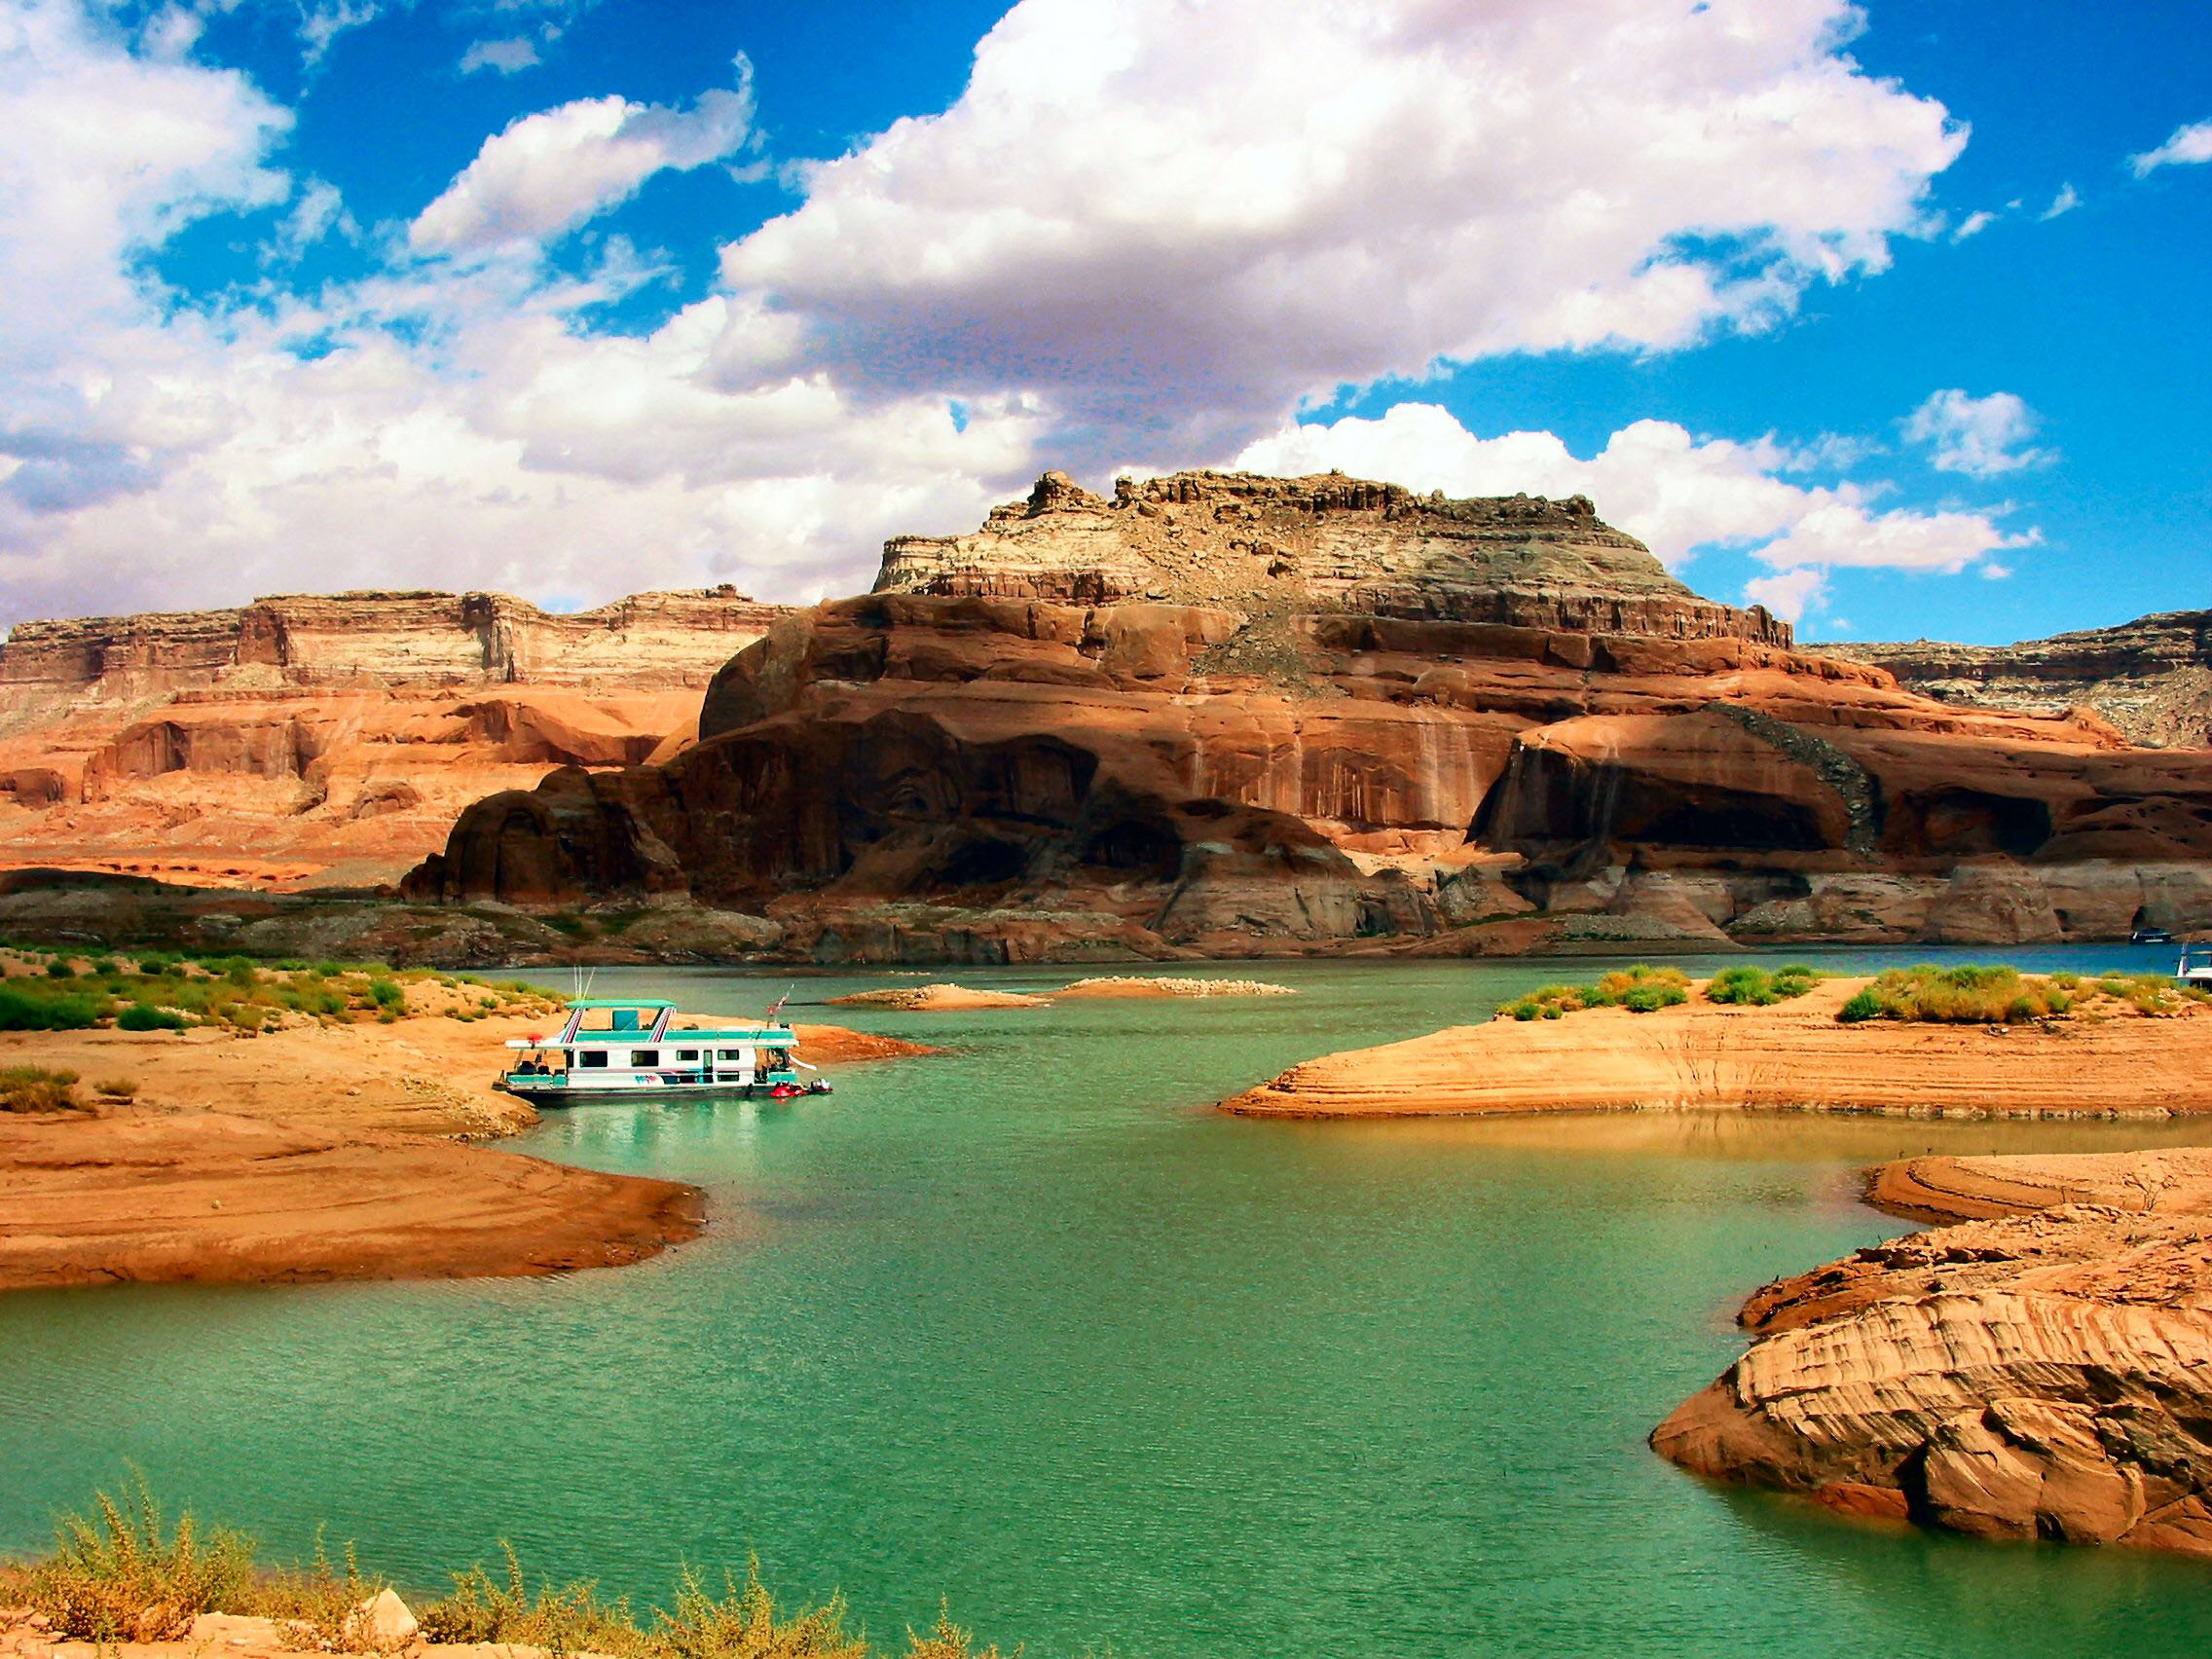 Lake And Bay Boats >> Warm Creek Bay - MasterCraft Lake Powell